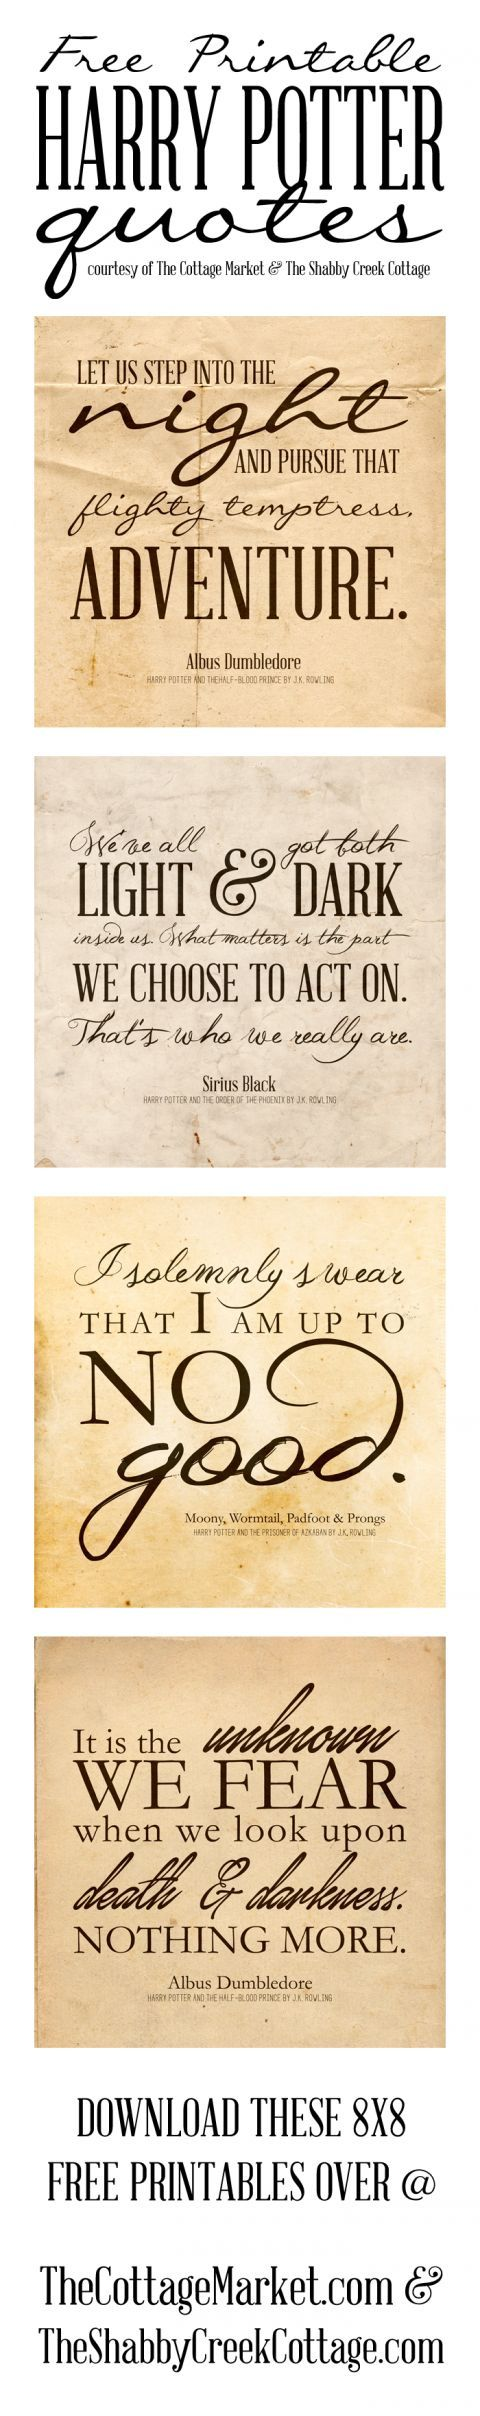 TCM&TSCC-HarryPotter-Quote-Printable-Tower